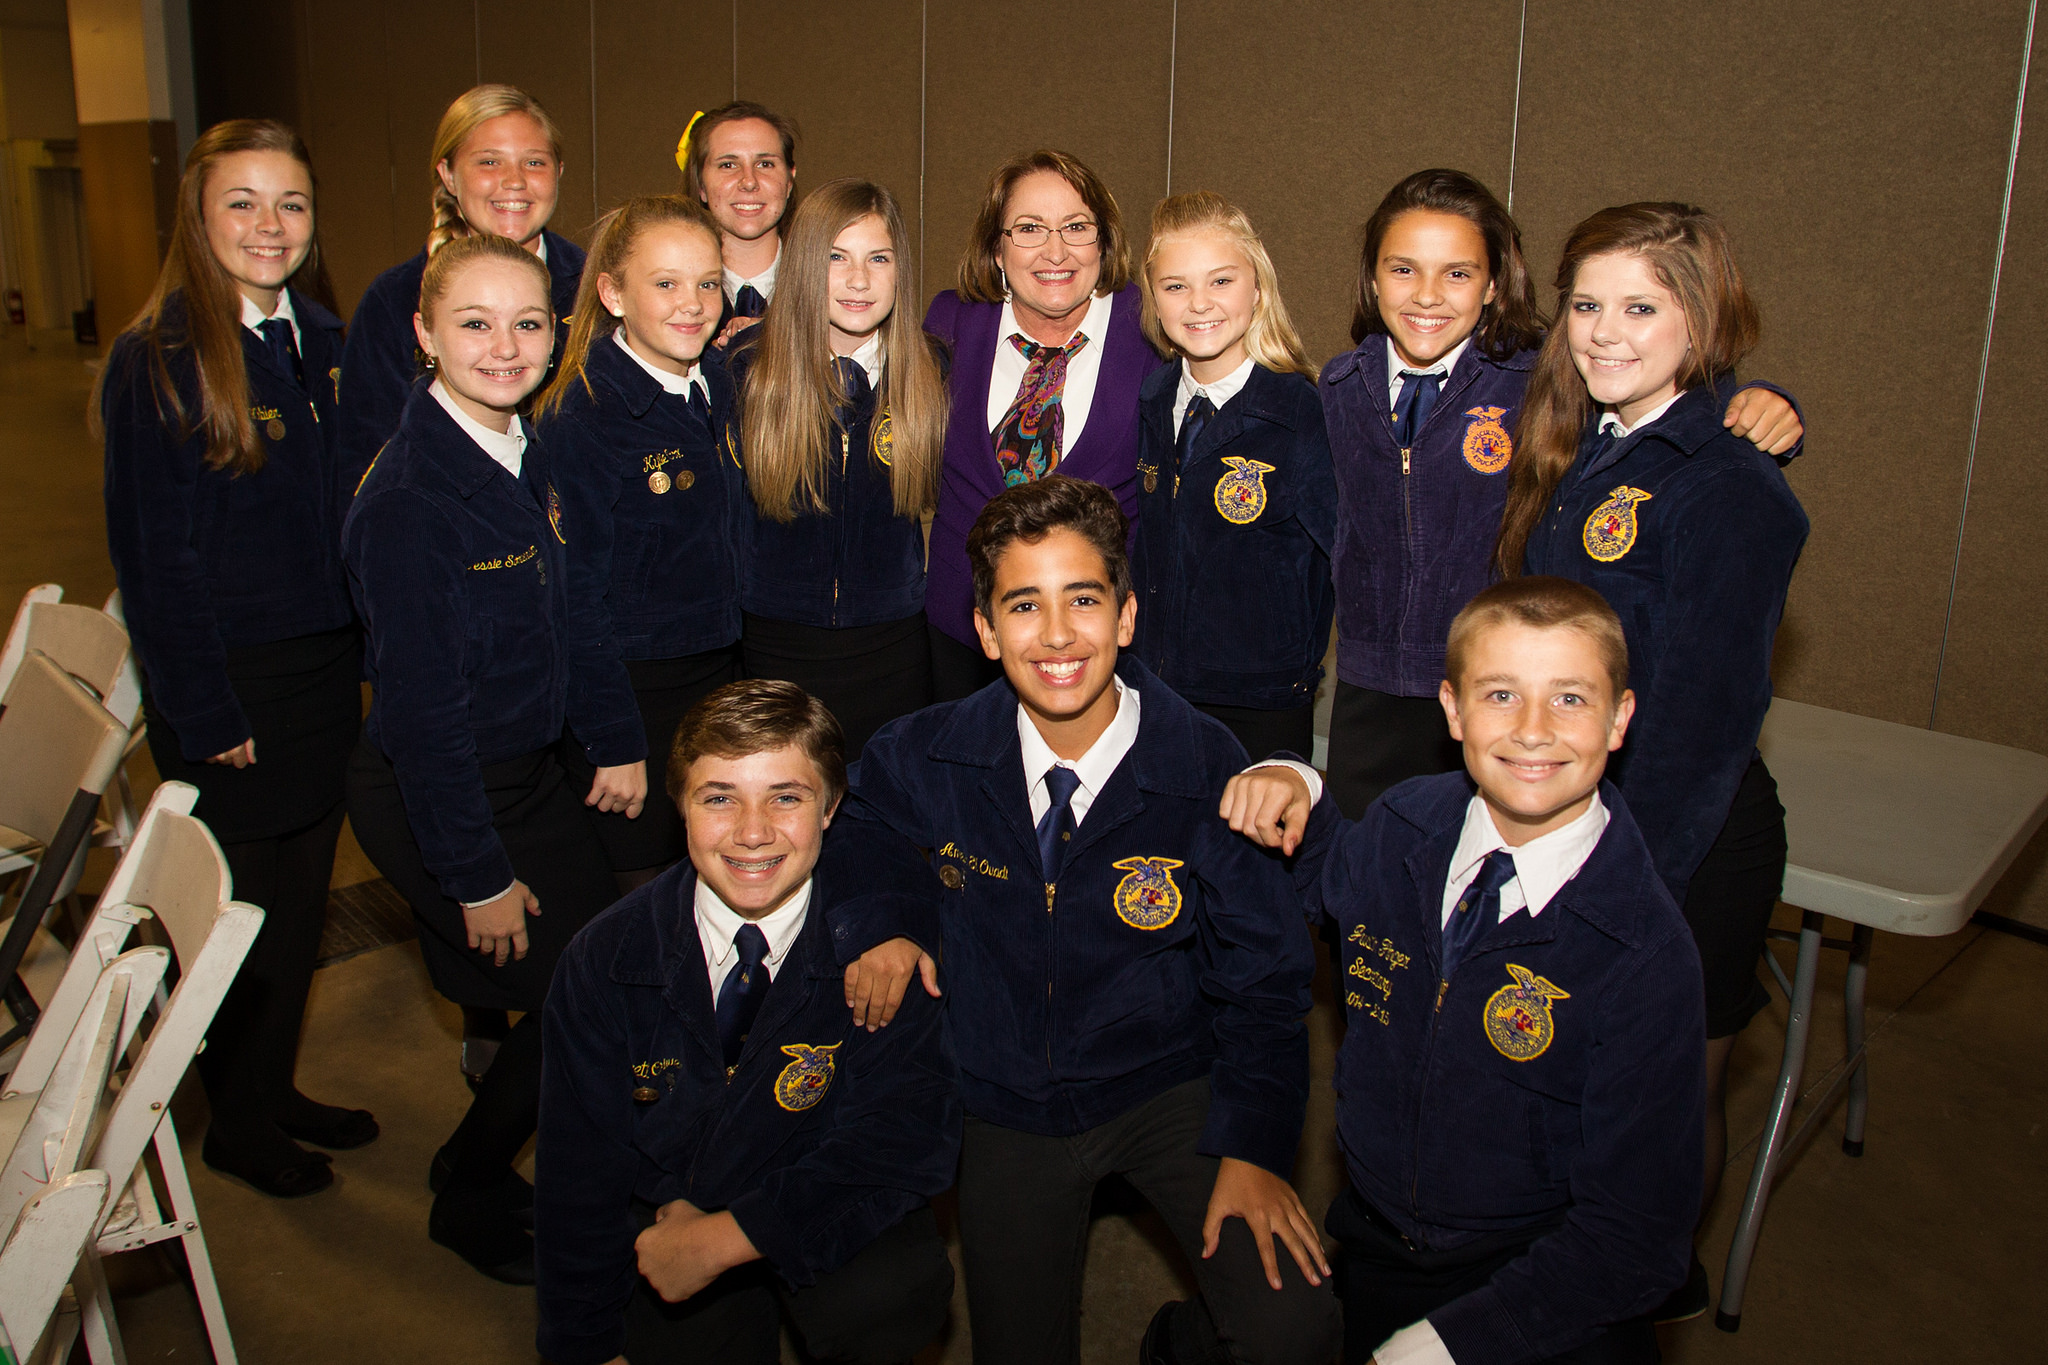 Future Farmers of America members with Mayor Jacobs